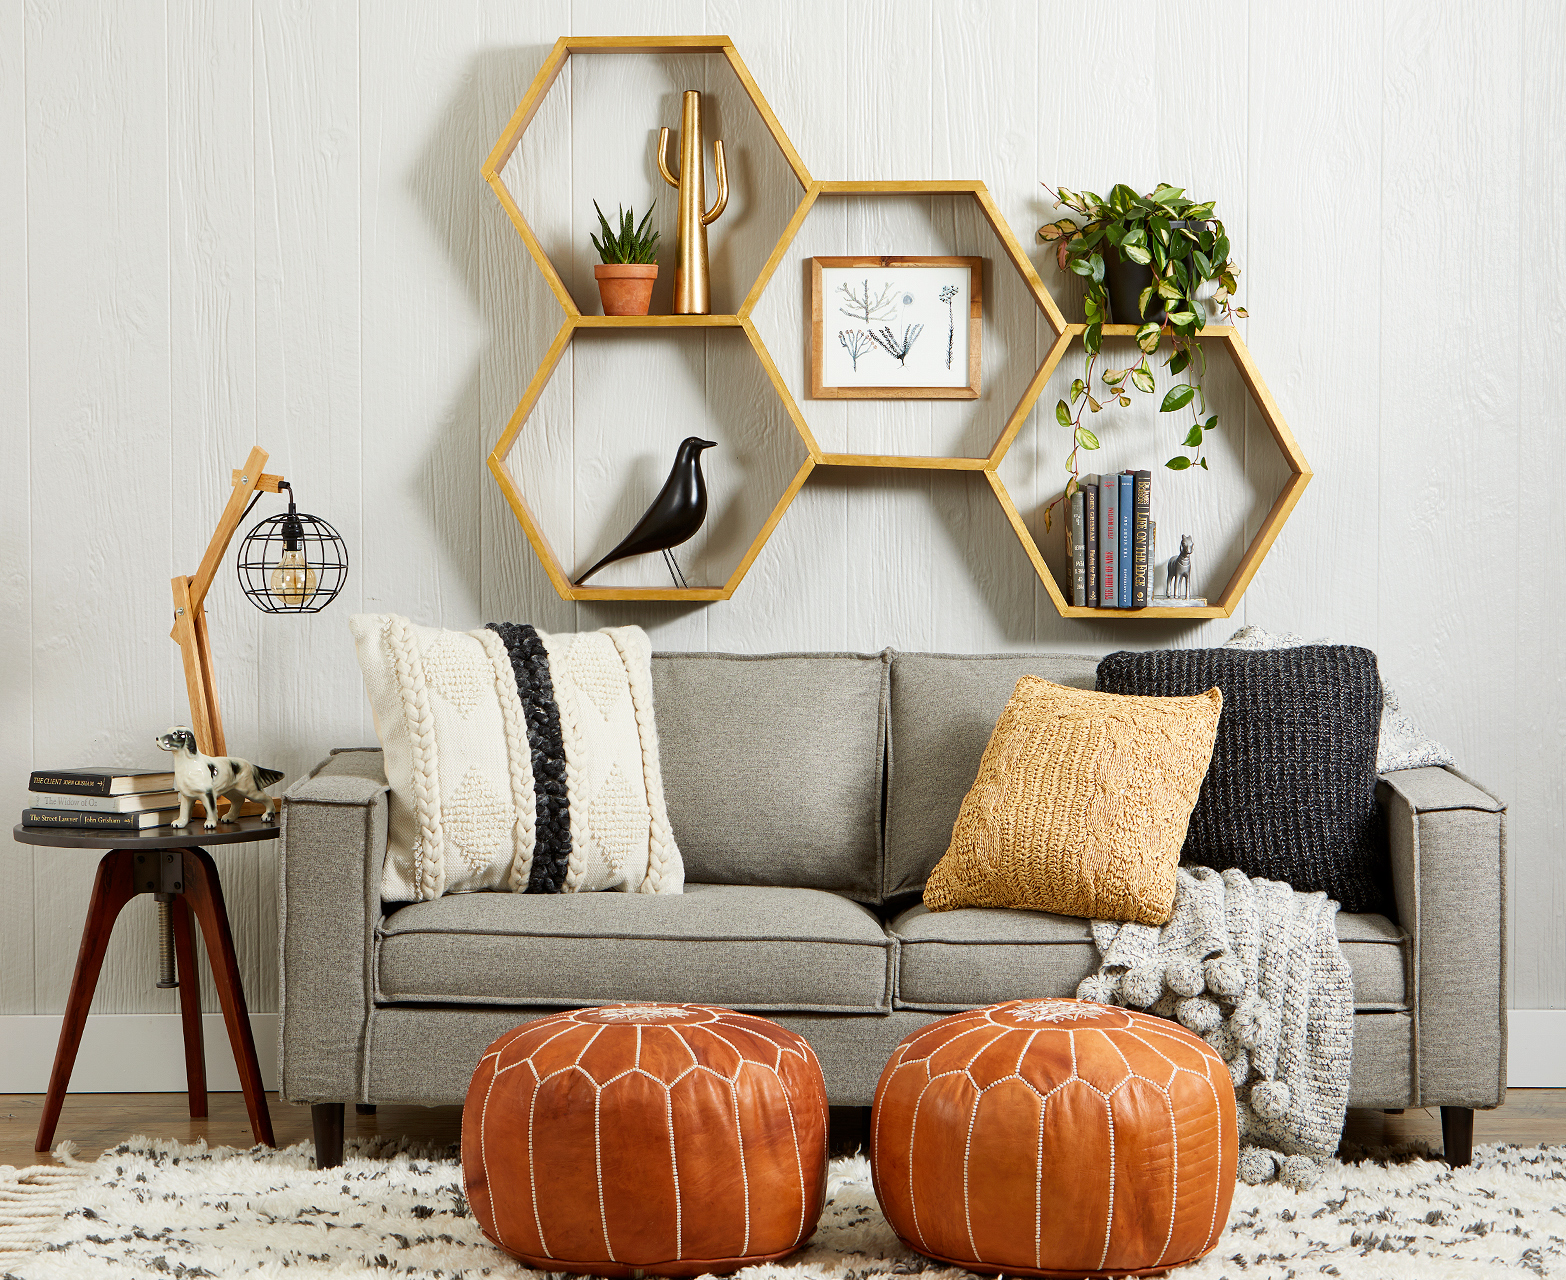 modern neutral room with hexagonal shelves